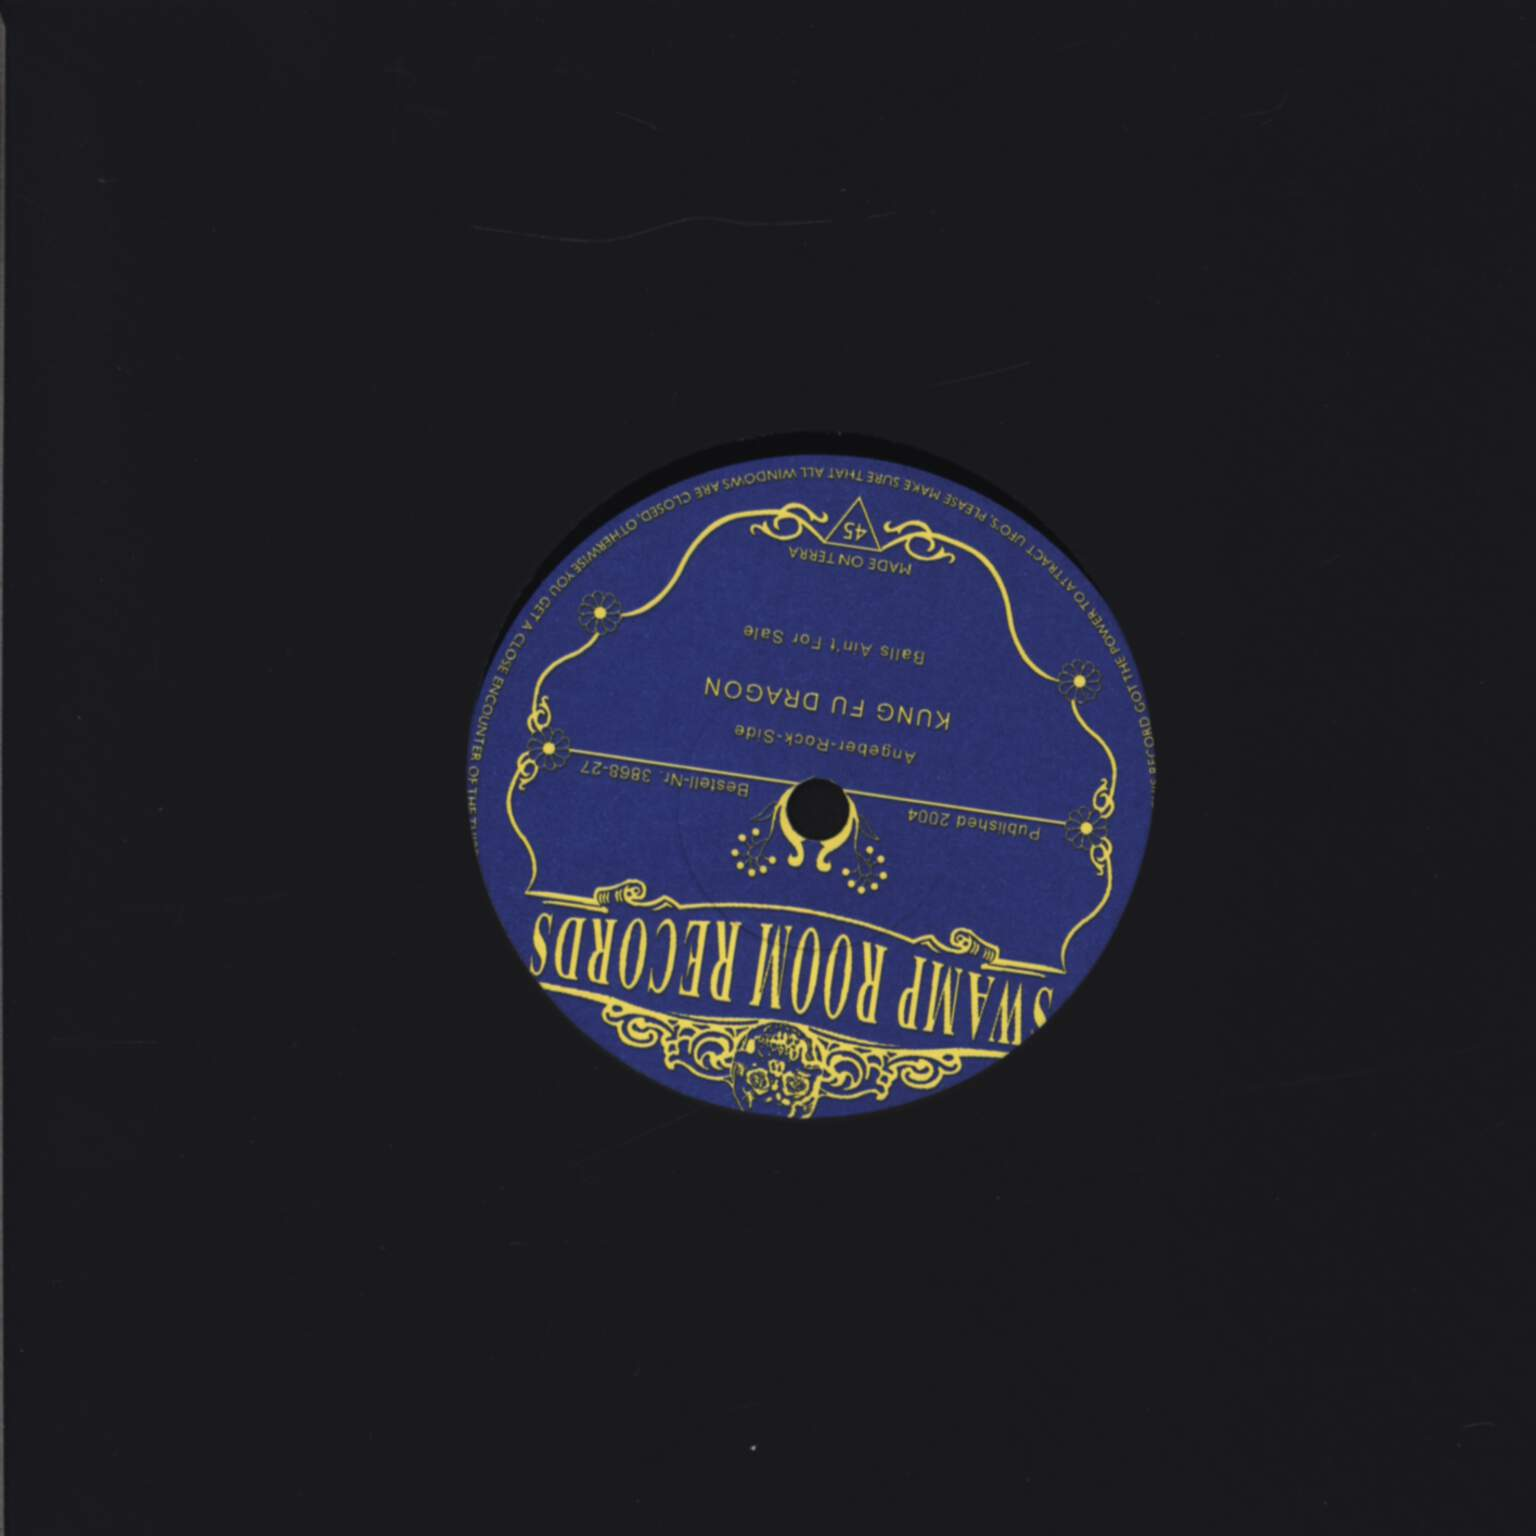 "Kilaueas: Swamp Room Single Club, 7"" Single (Vinyl)"